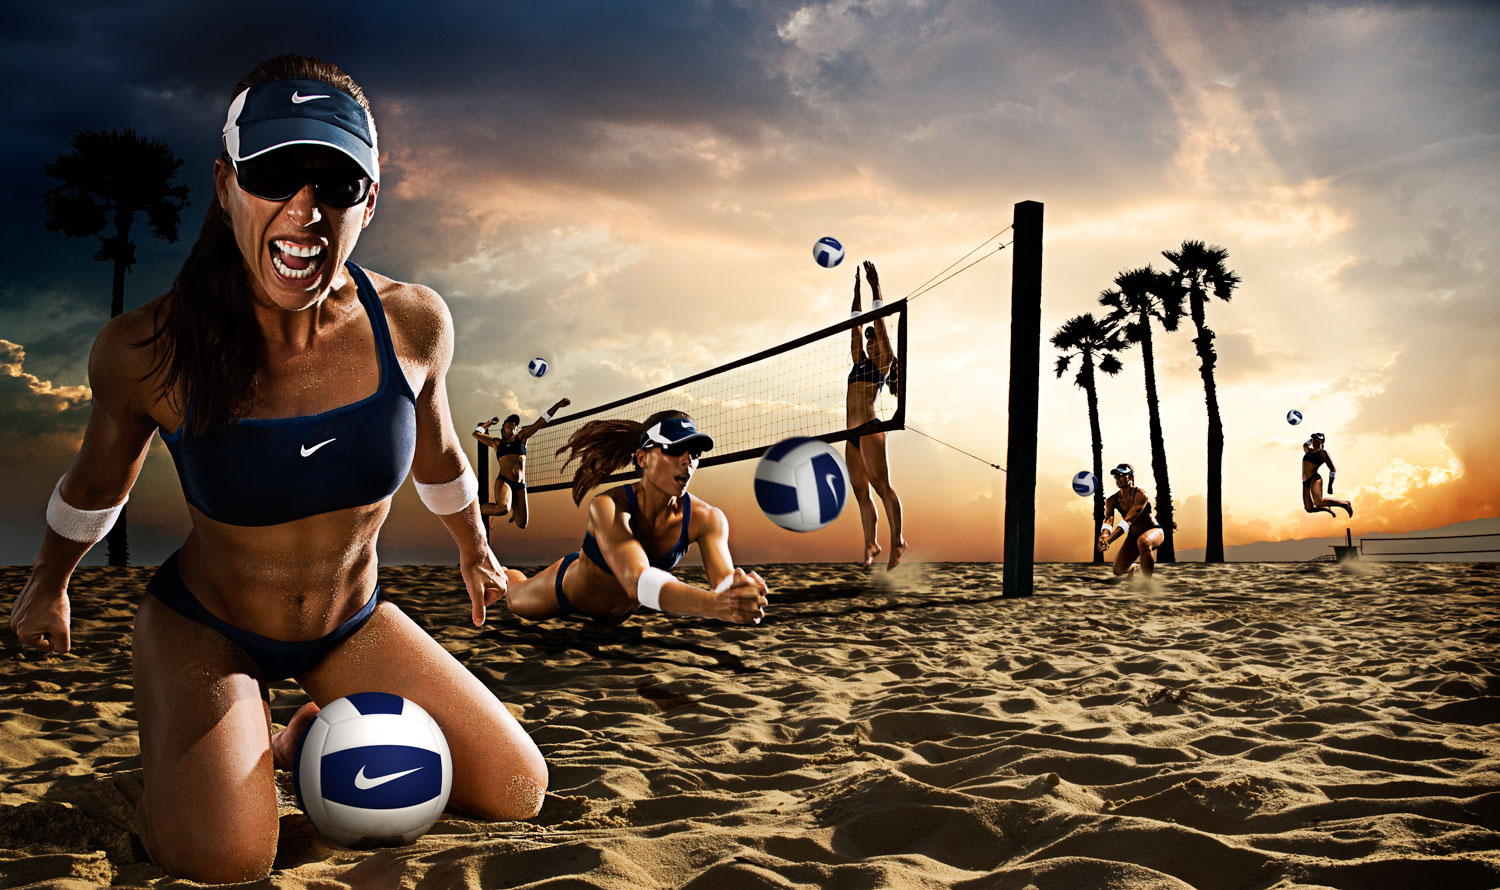 conceptual sports photography.jpg